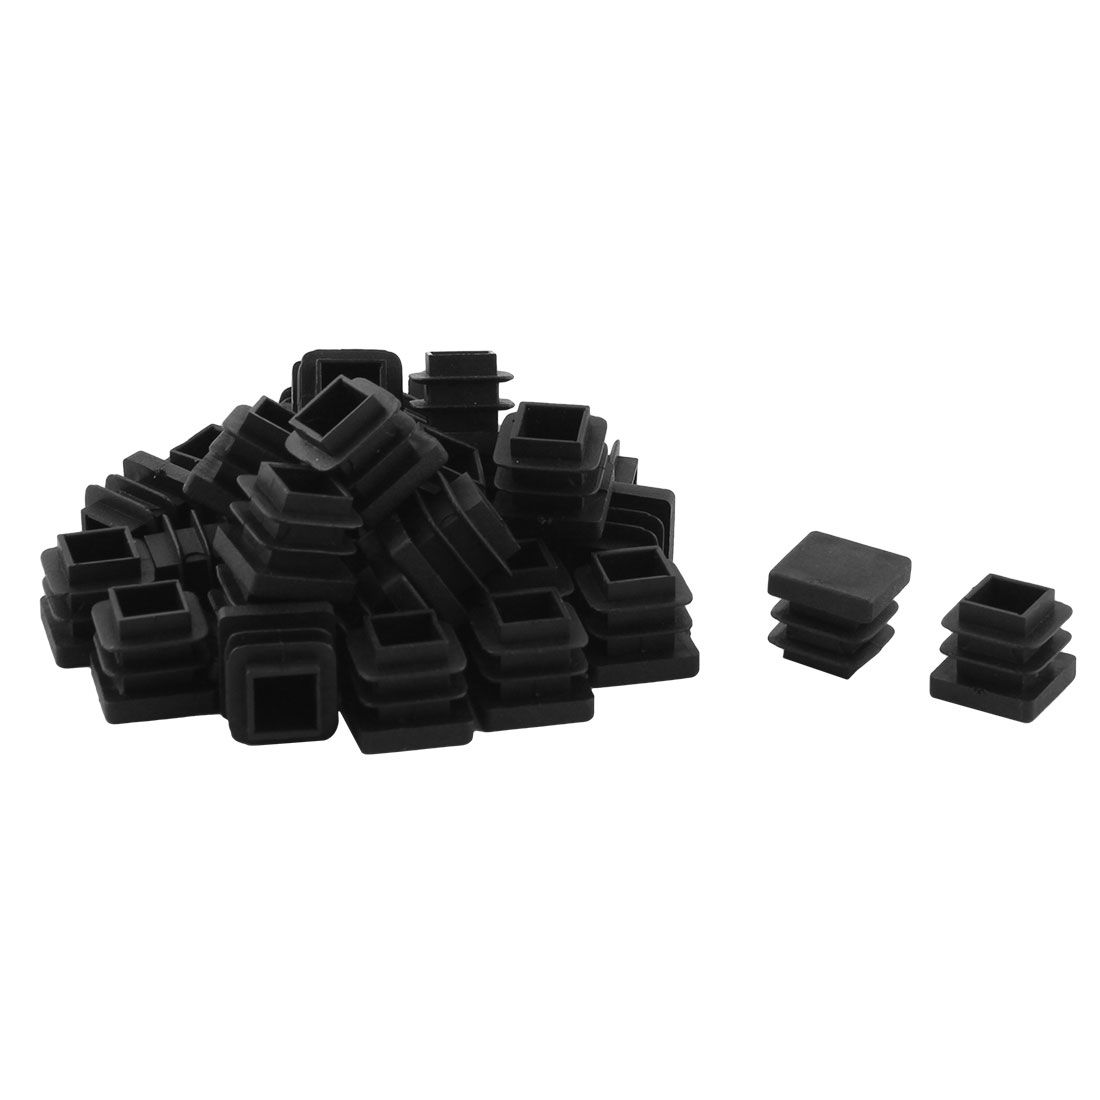 Home Office Plastic Square Table Chair Leg Tube Insert Black 16 x 16mm 80pcs